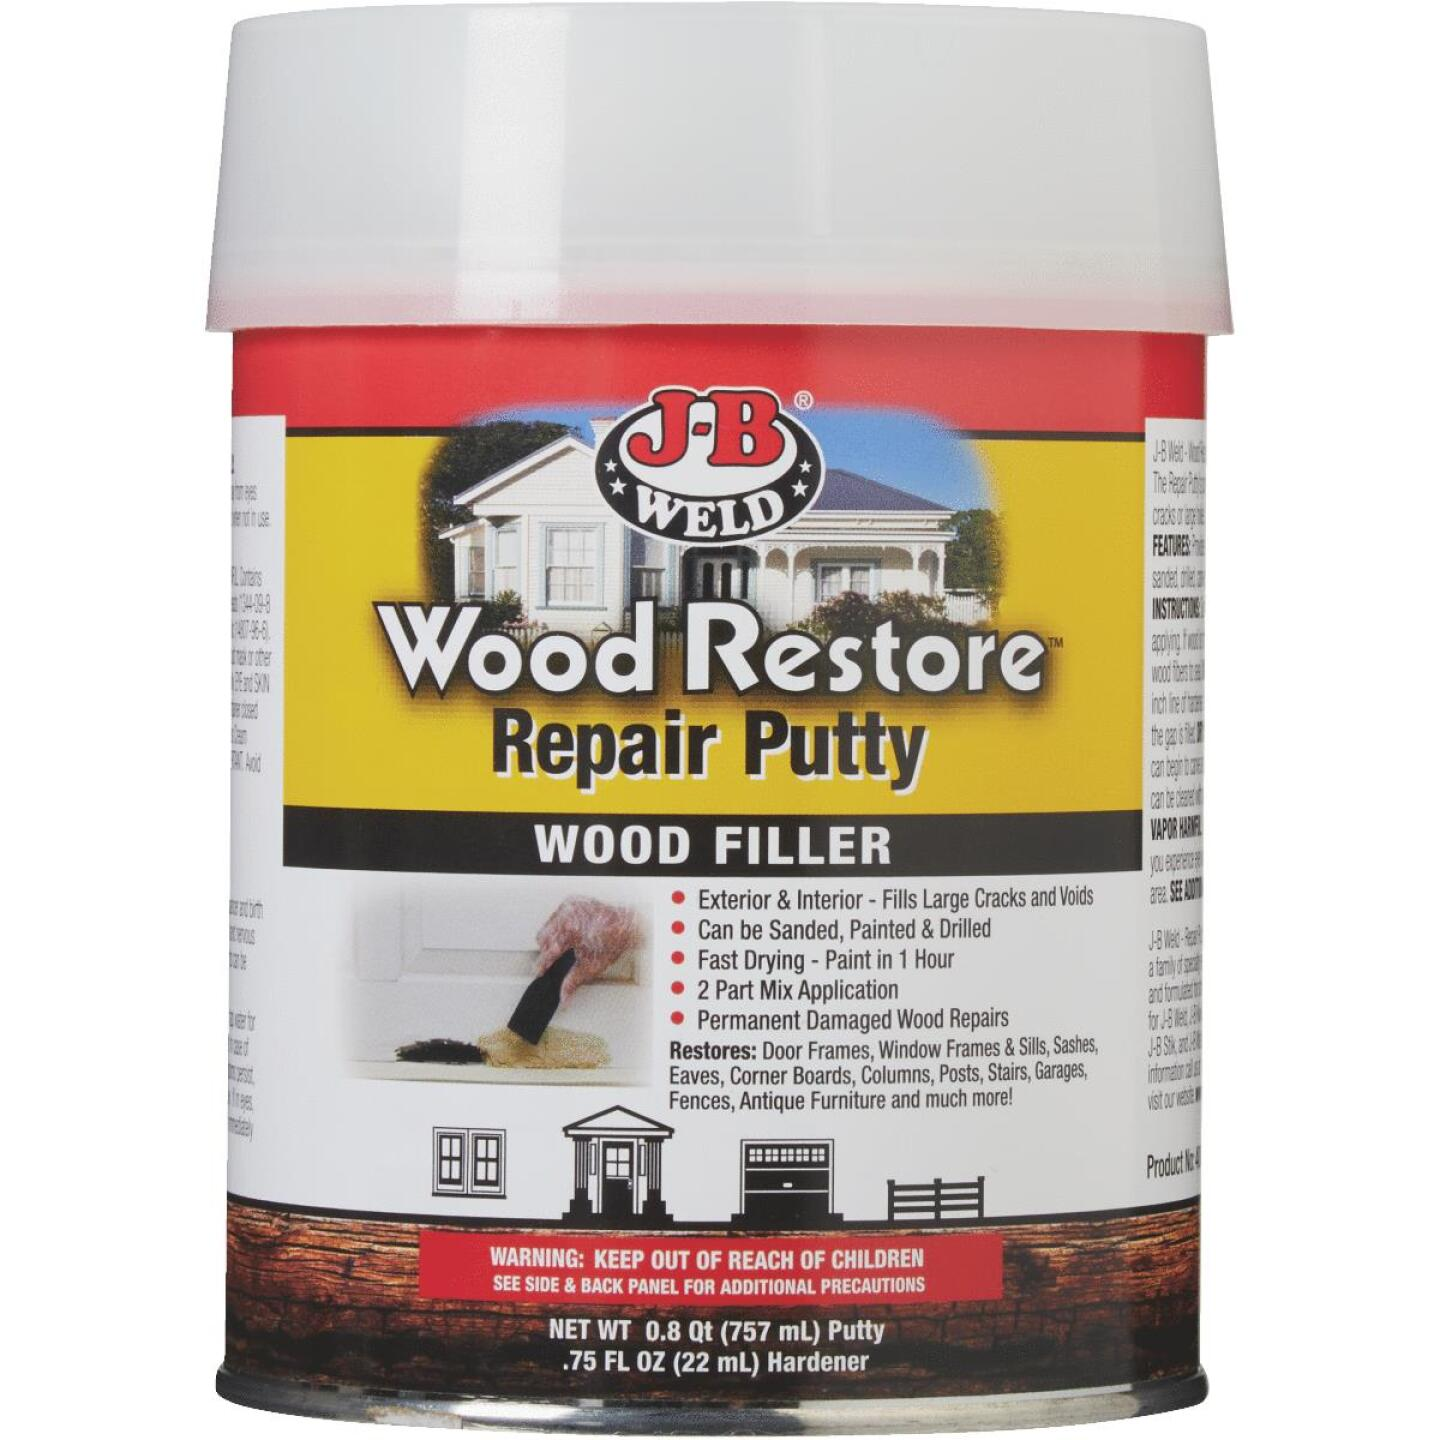 J-B Weld Wood Restore 32 Oz. 2-Part Repair Wood Putty Image 2